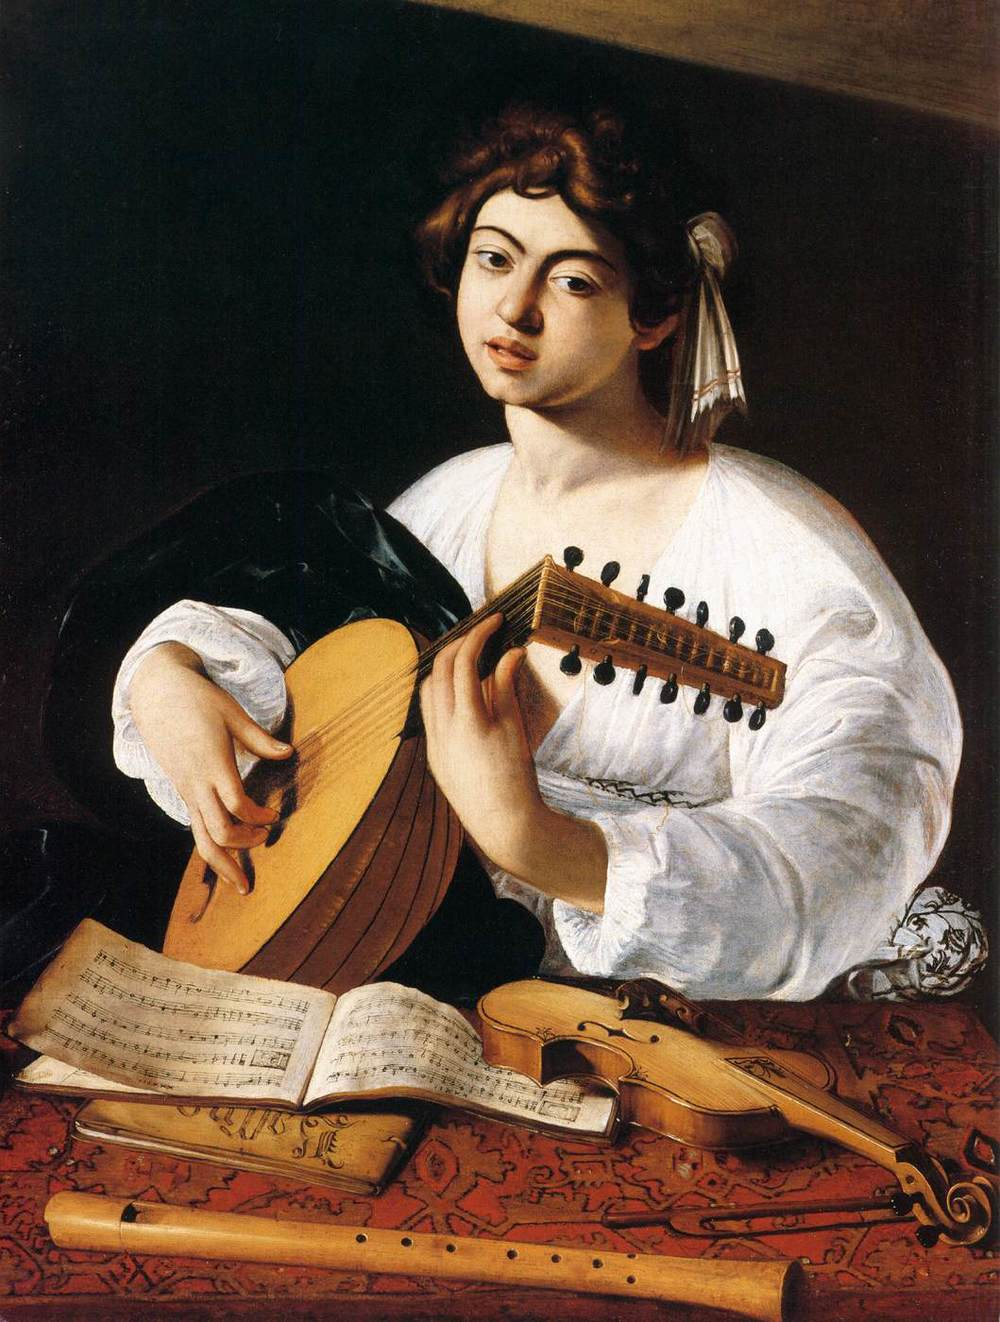 The Lute Player, Caravaggio, 1596